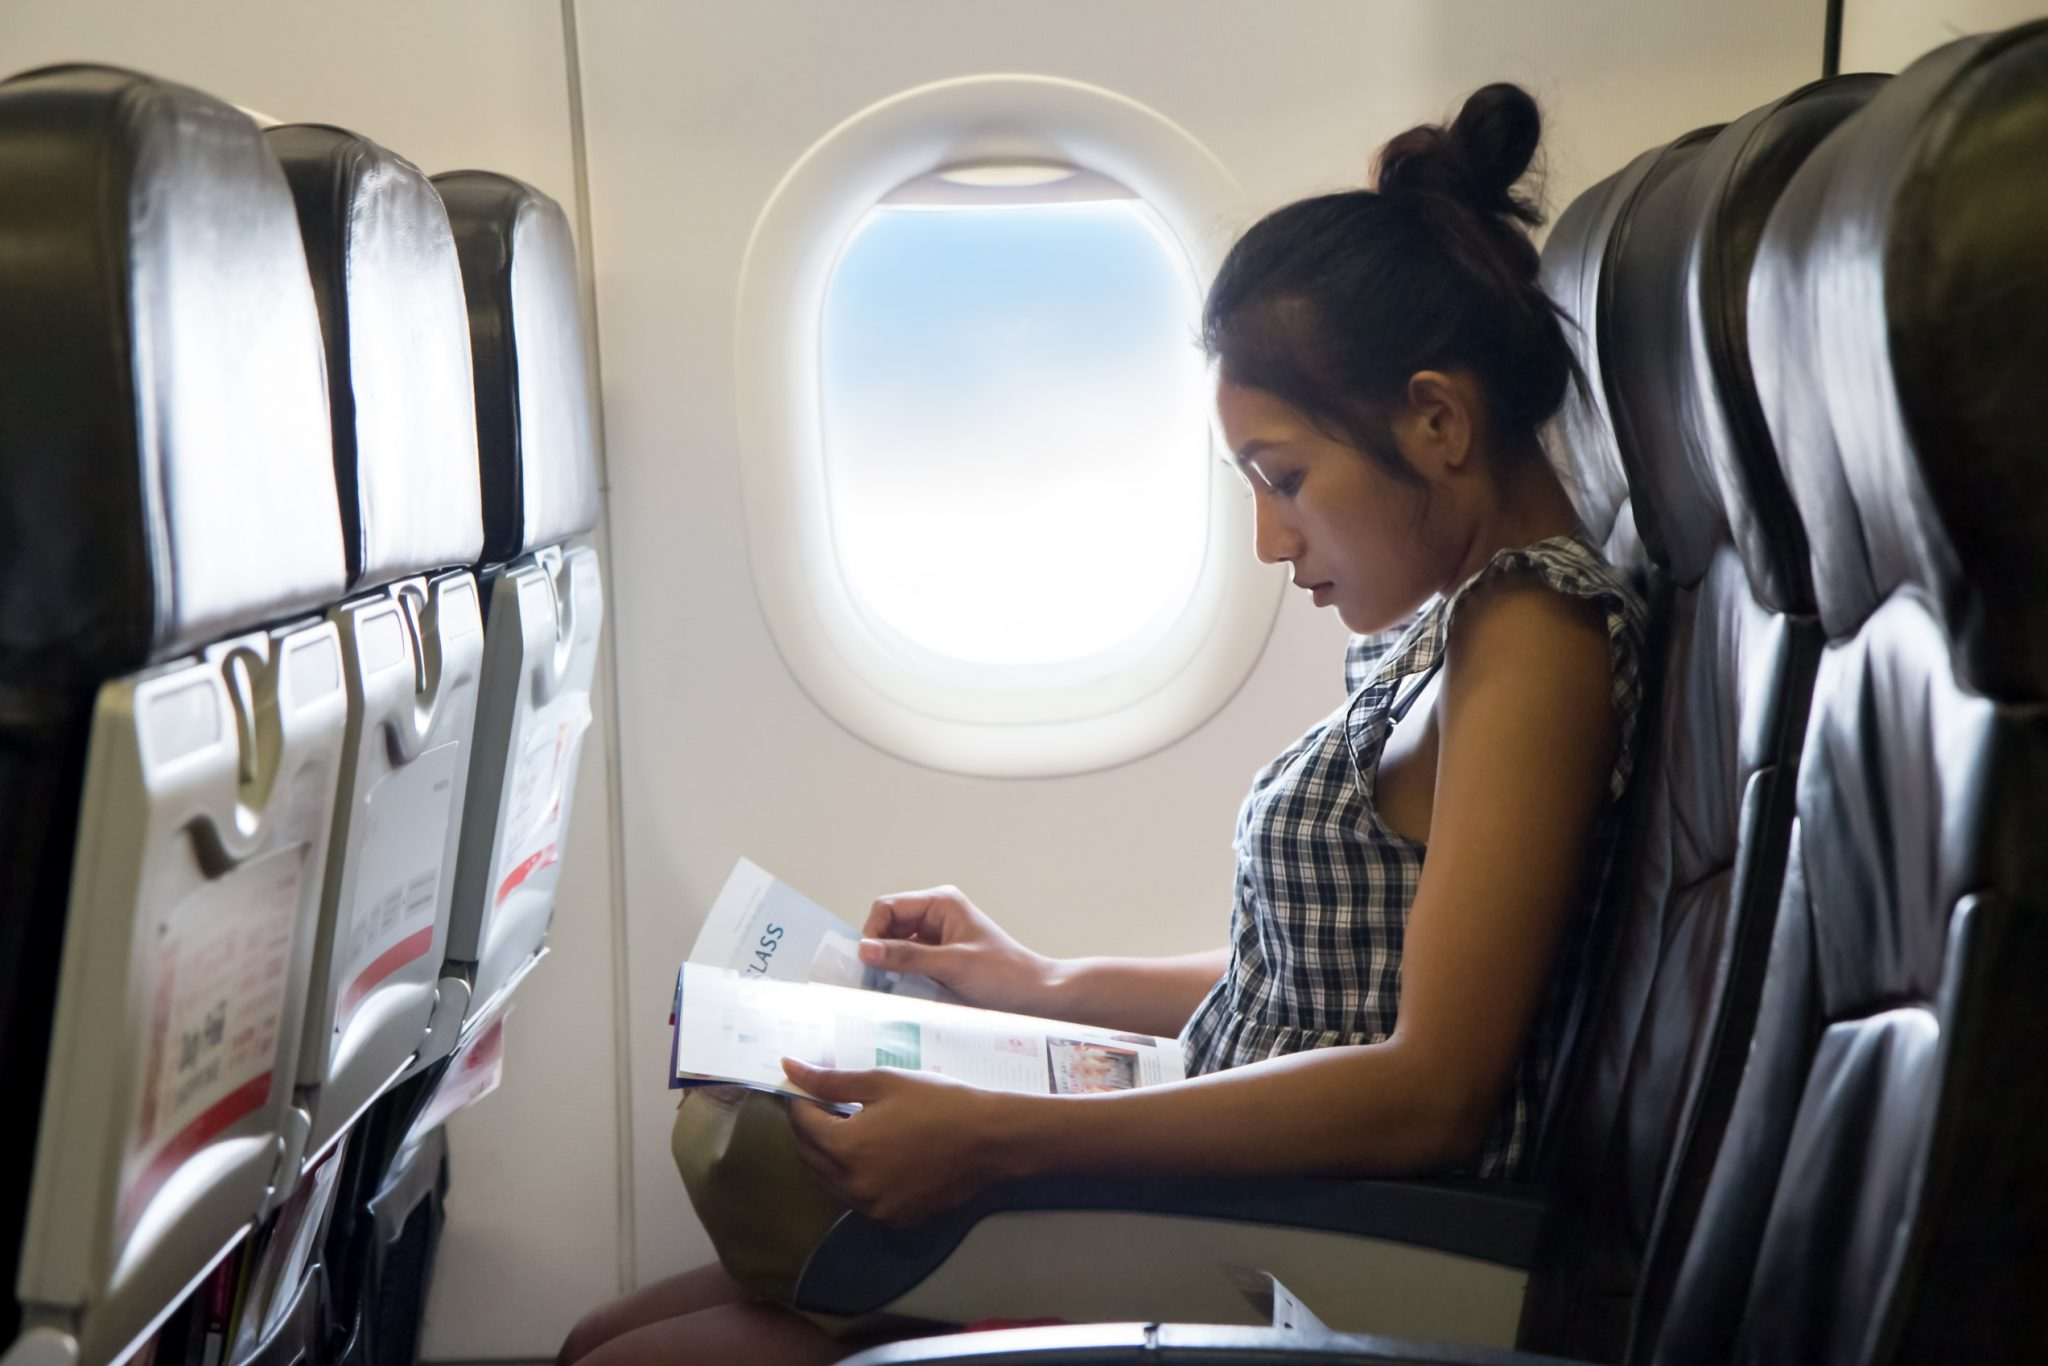 Believe it or not air travel at 38,000 feet can cause your skin to tan